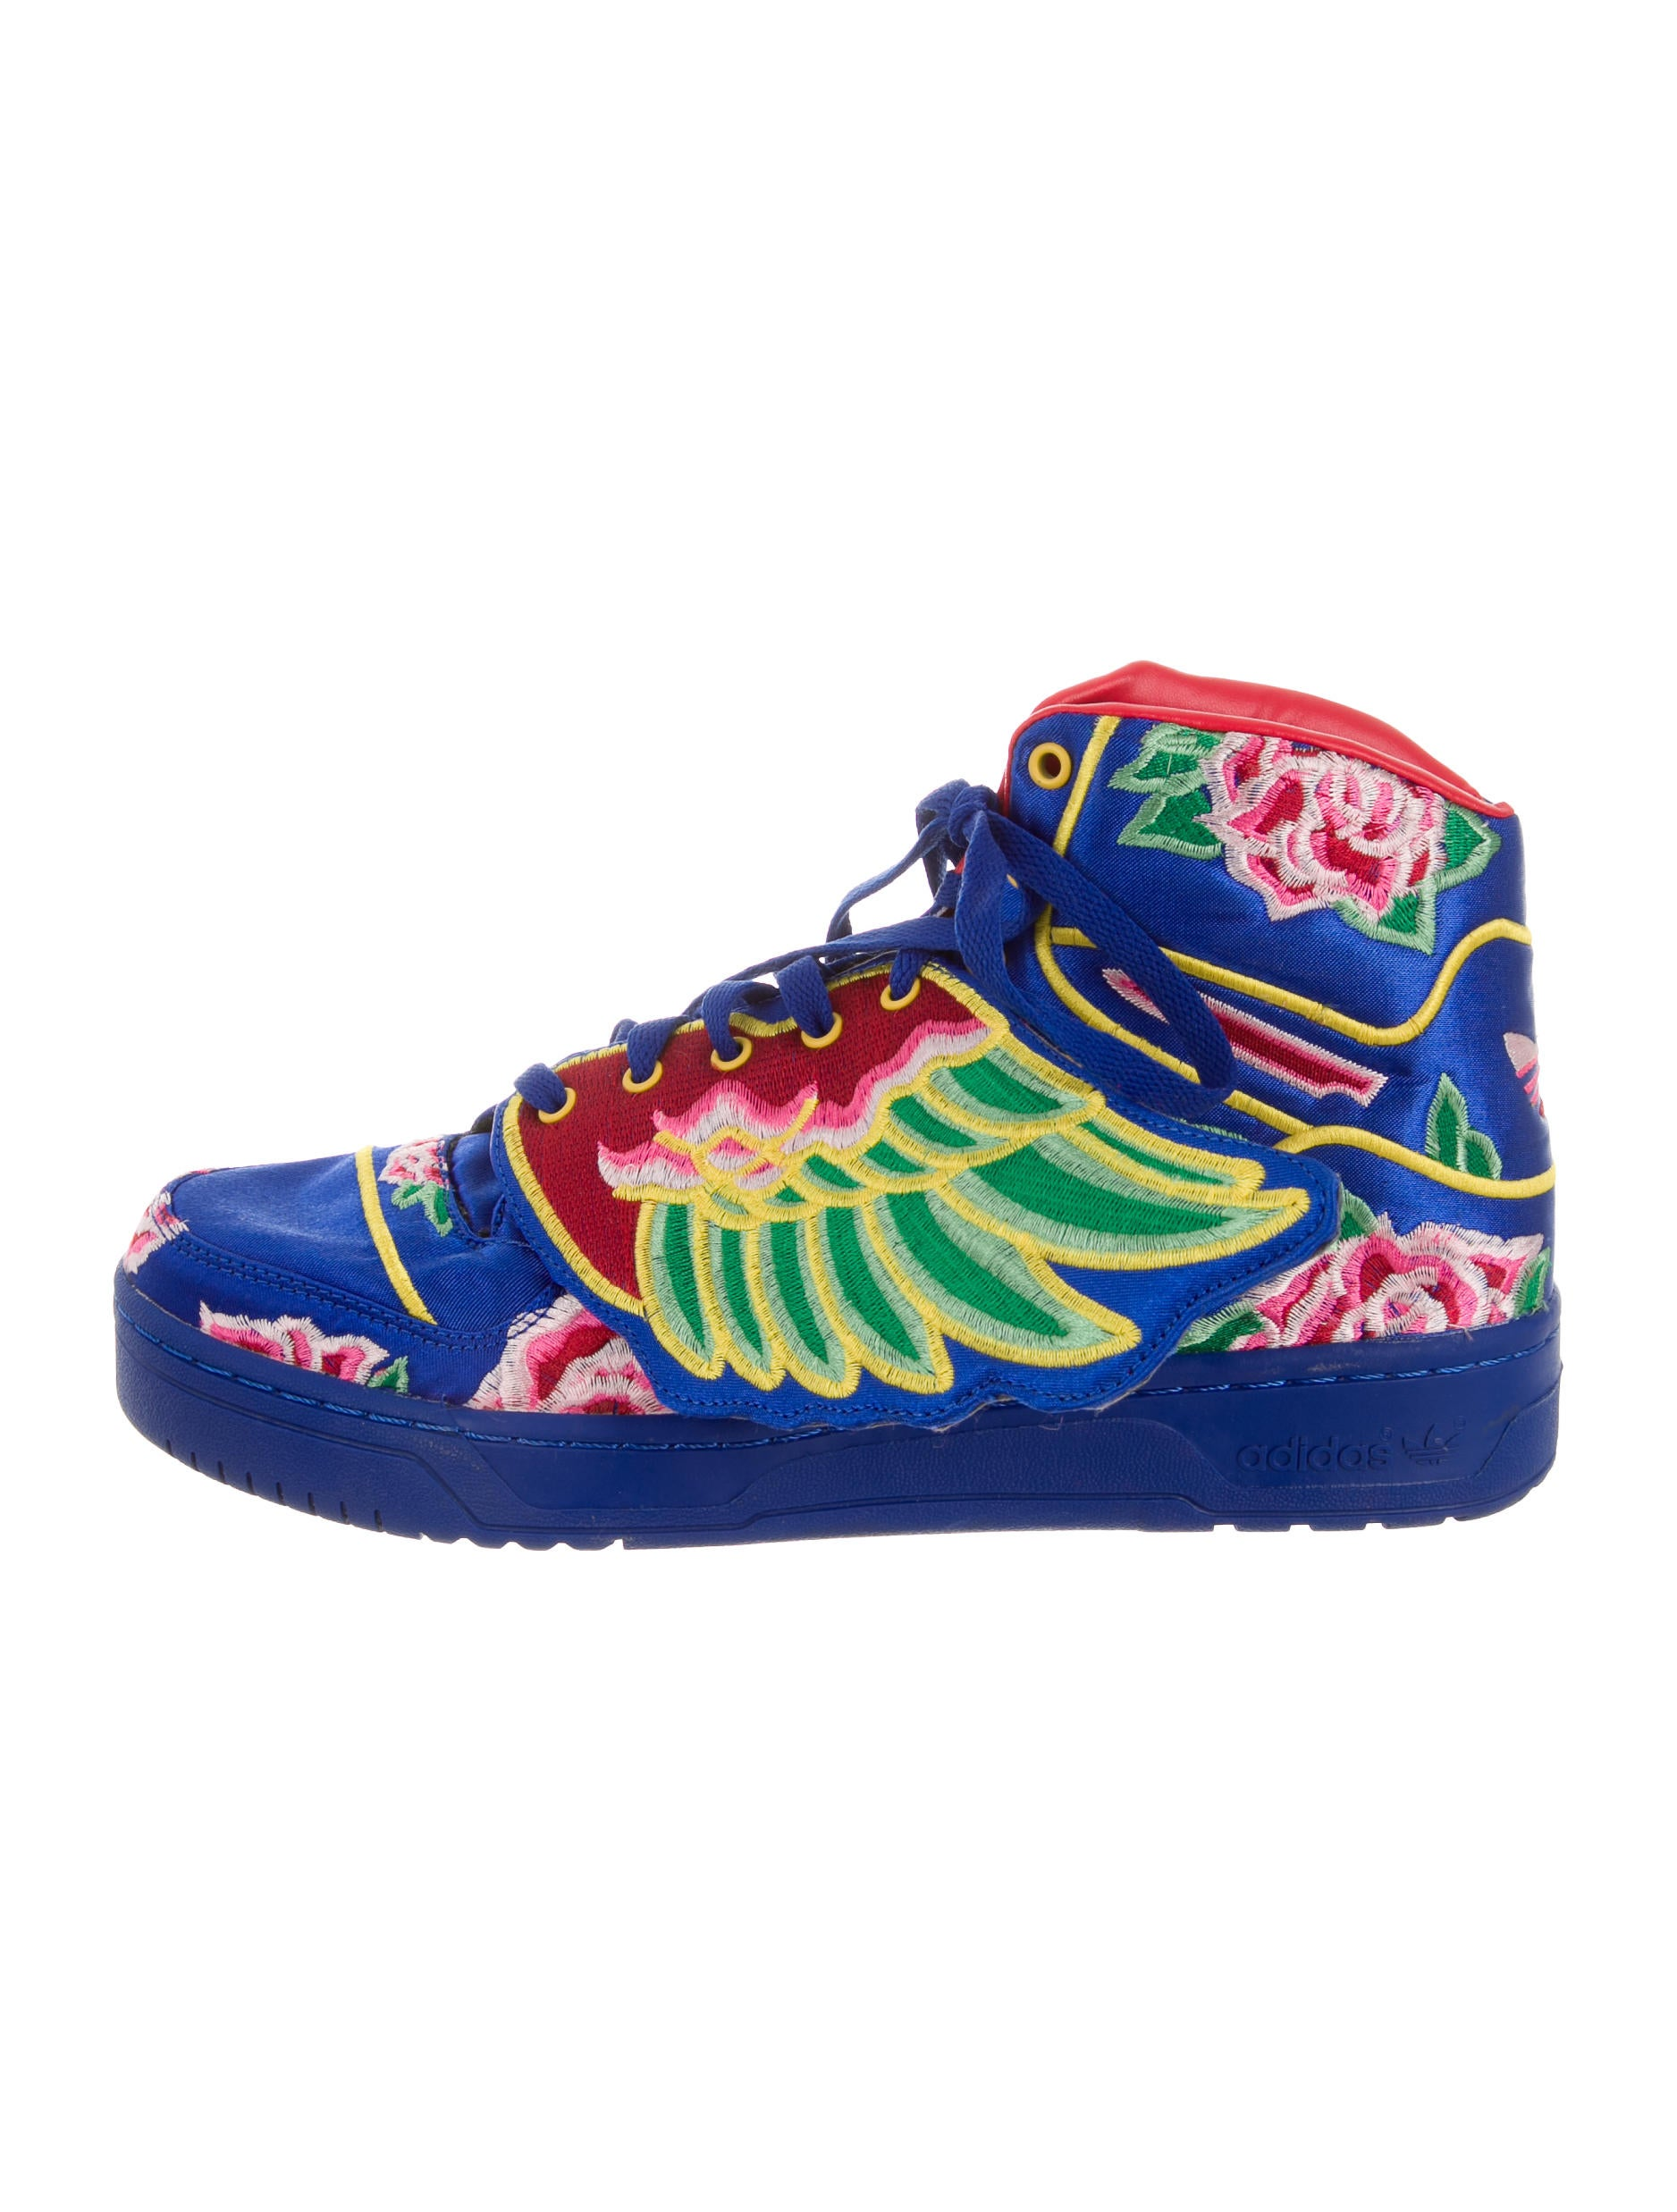 Jeremy scott adidas floral embroidered high top sneakers